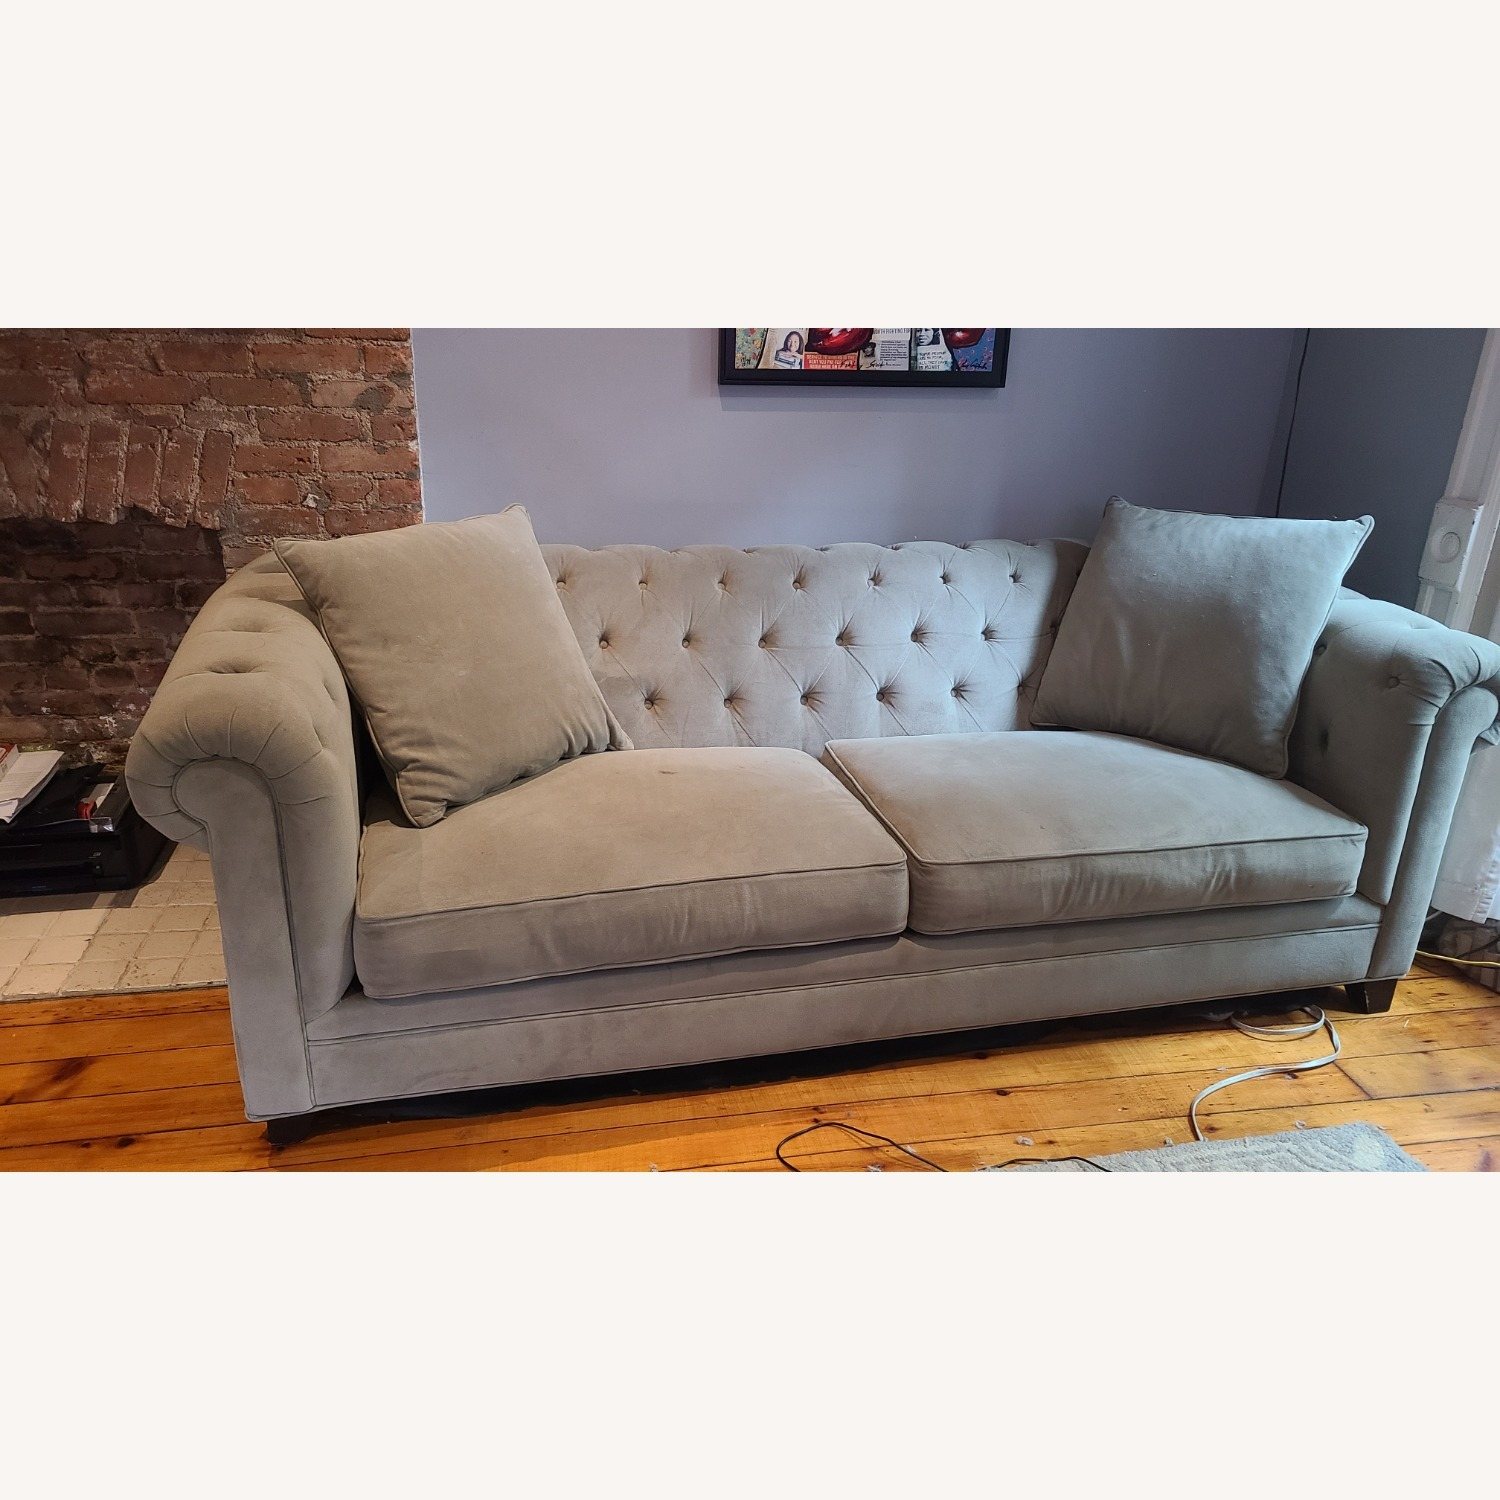 Martha Stewart Gray Saybridge 3 Seater Sofa - image-4